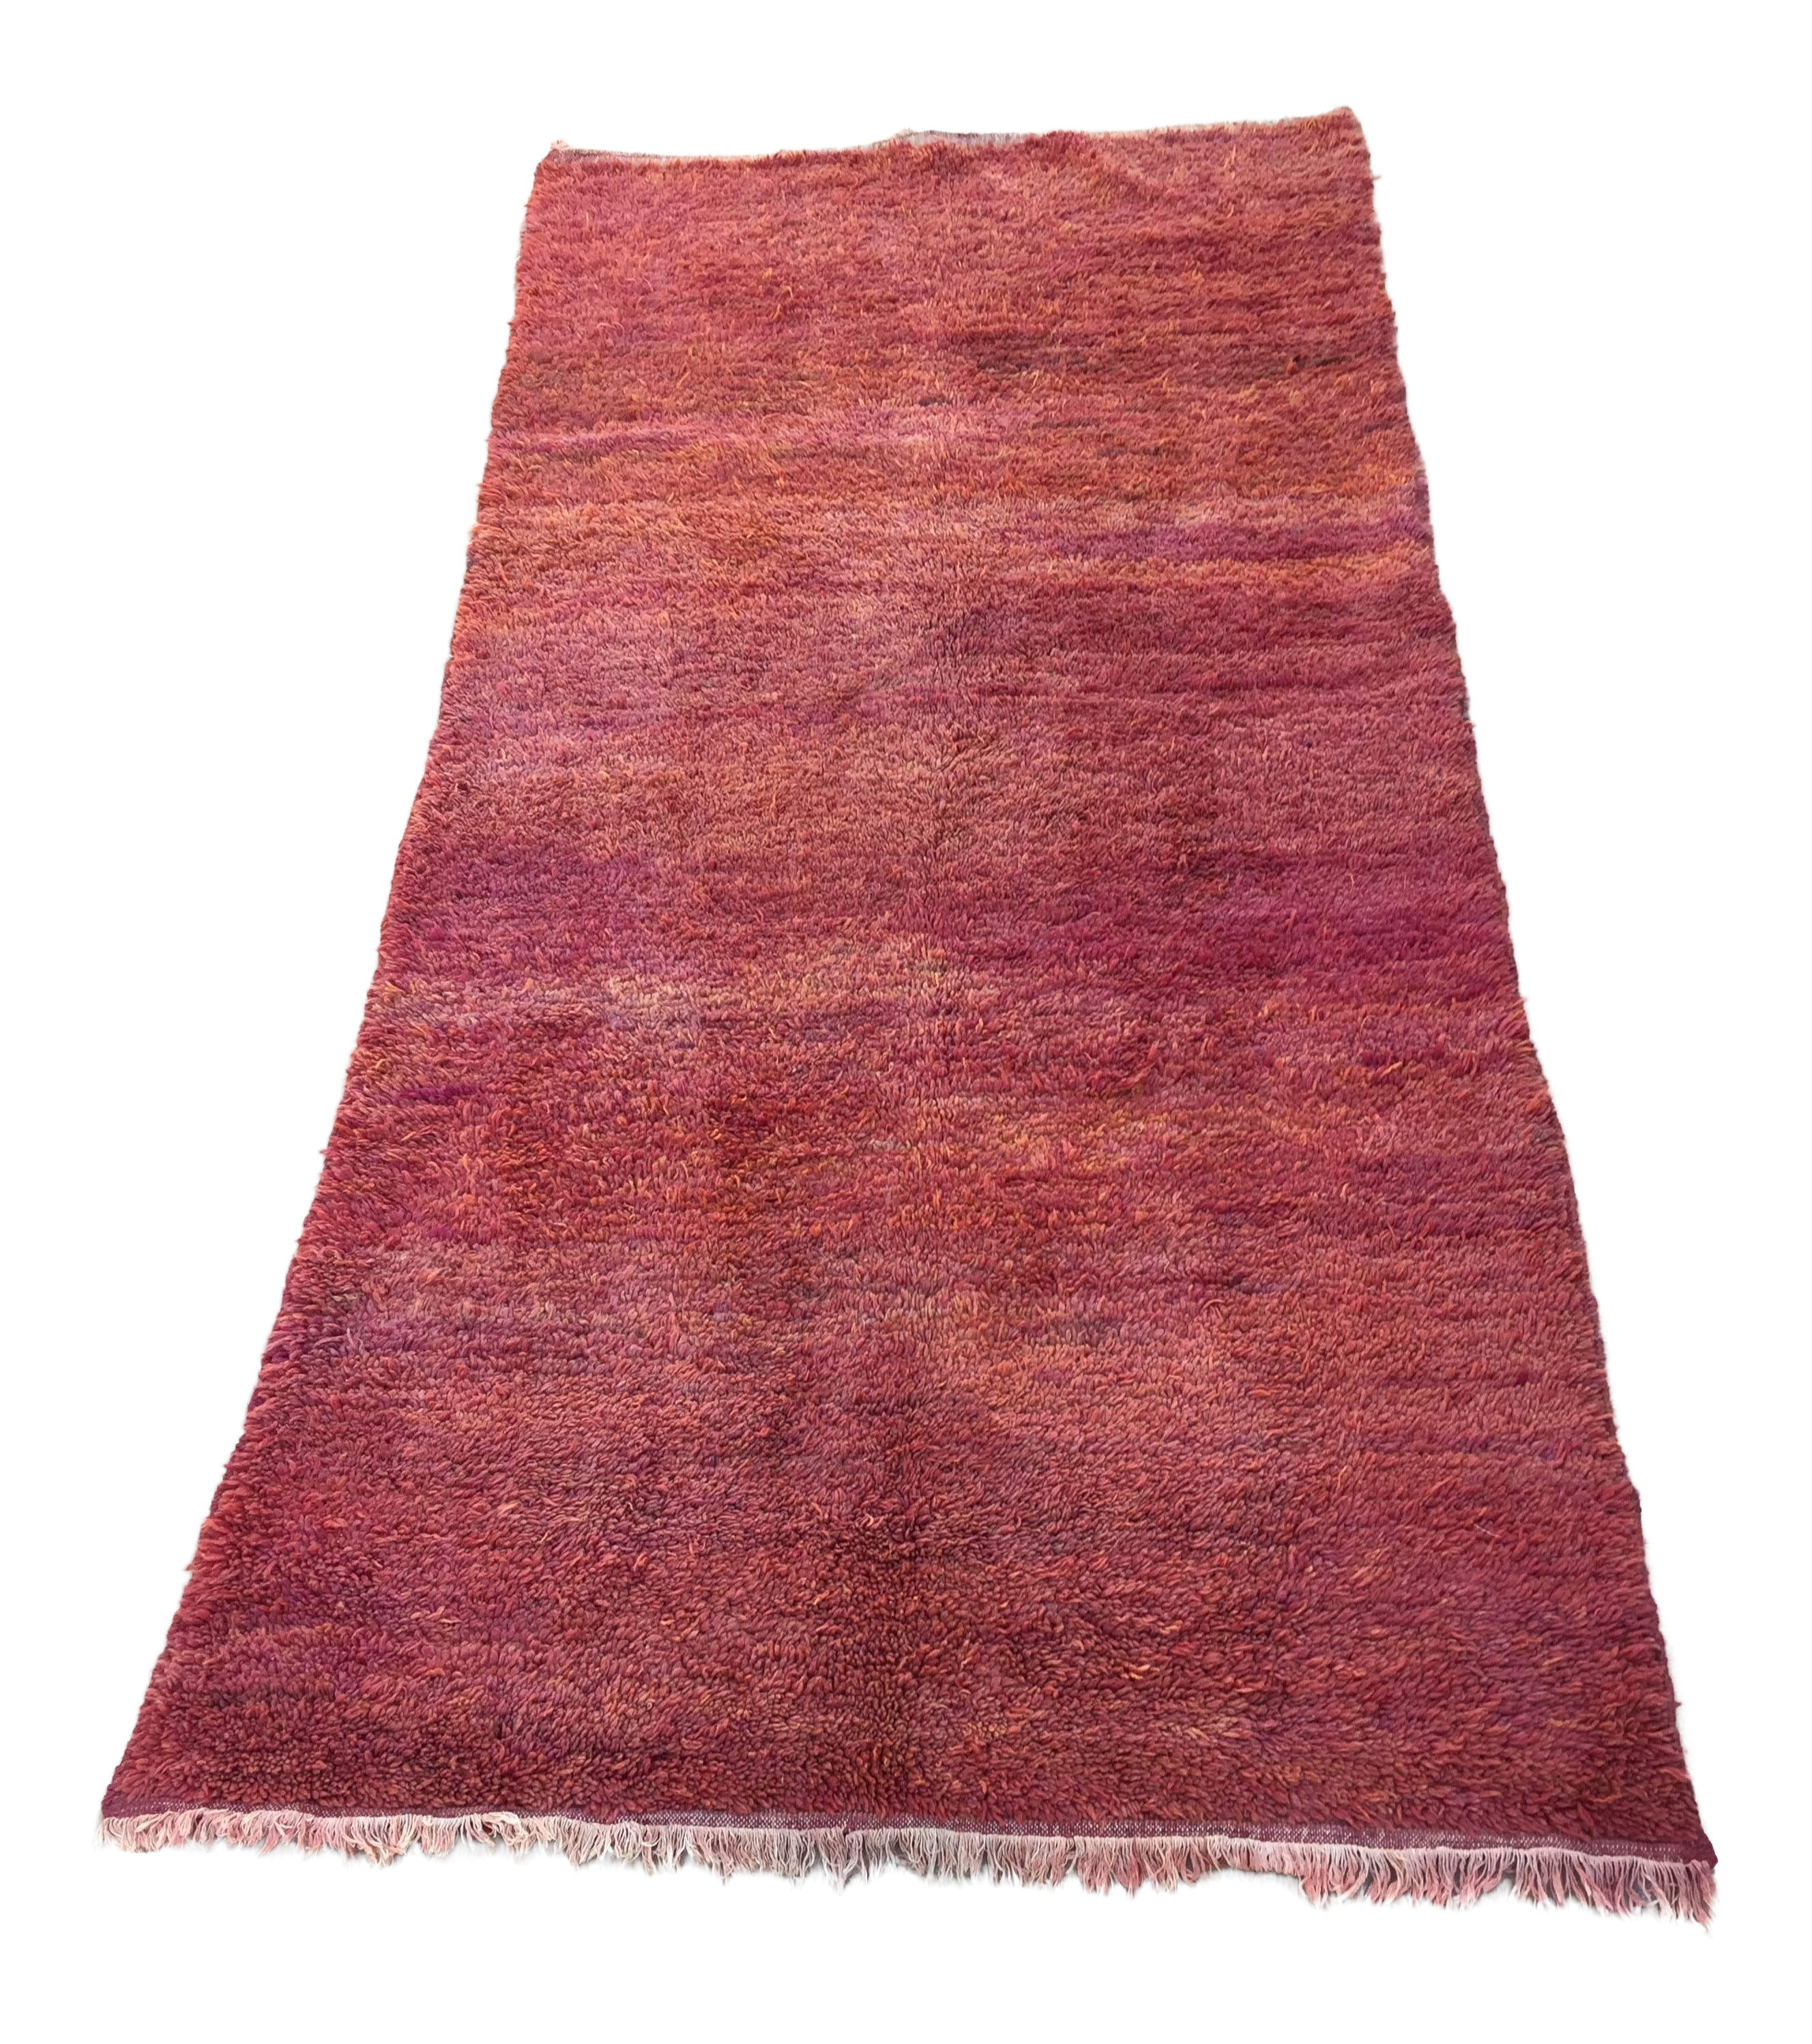 Moroccan Red Shaggy High Pile Wool Tribal Rug Bed Of Red Roses